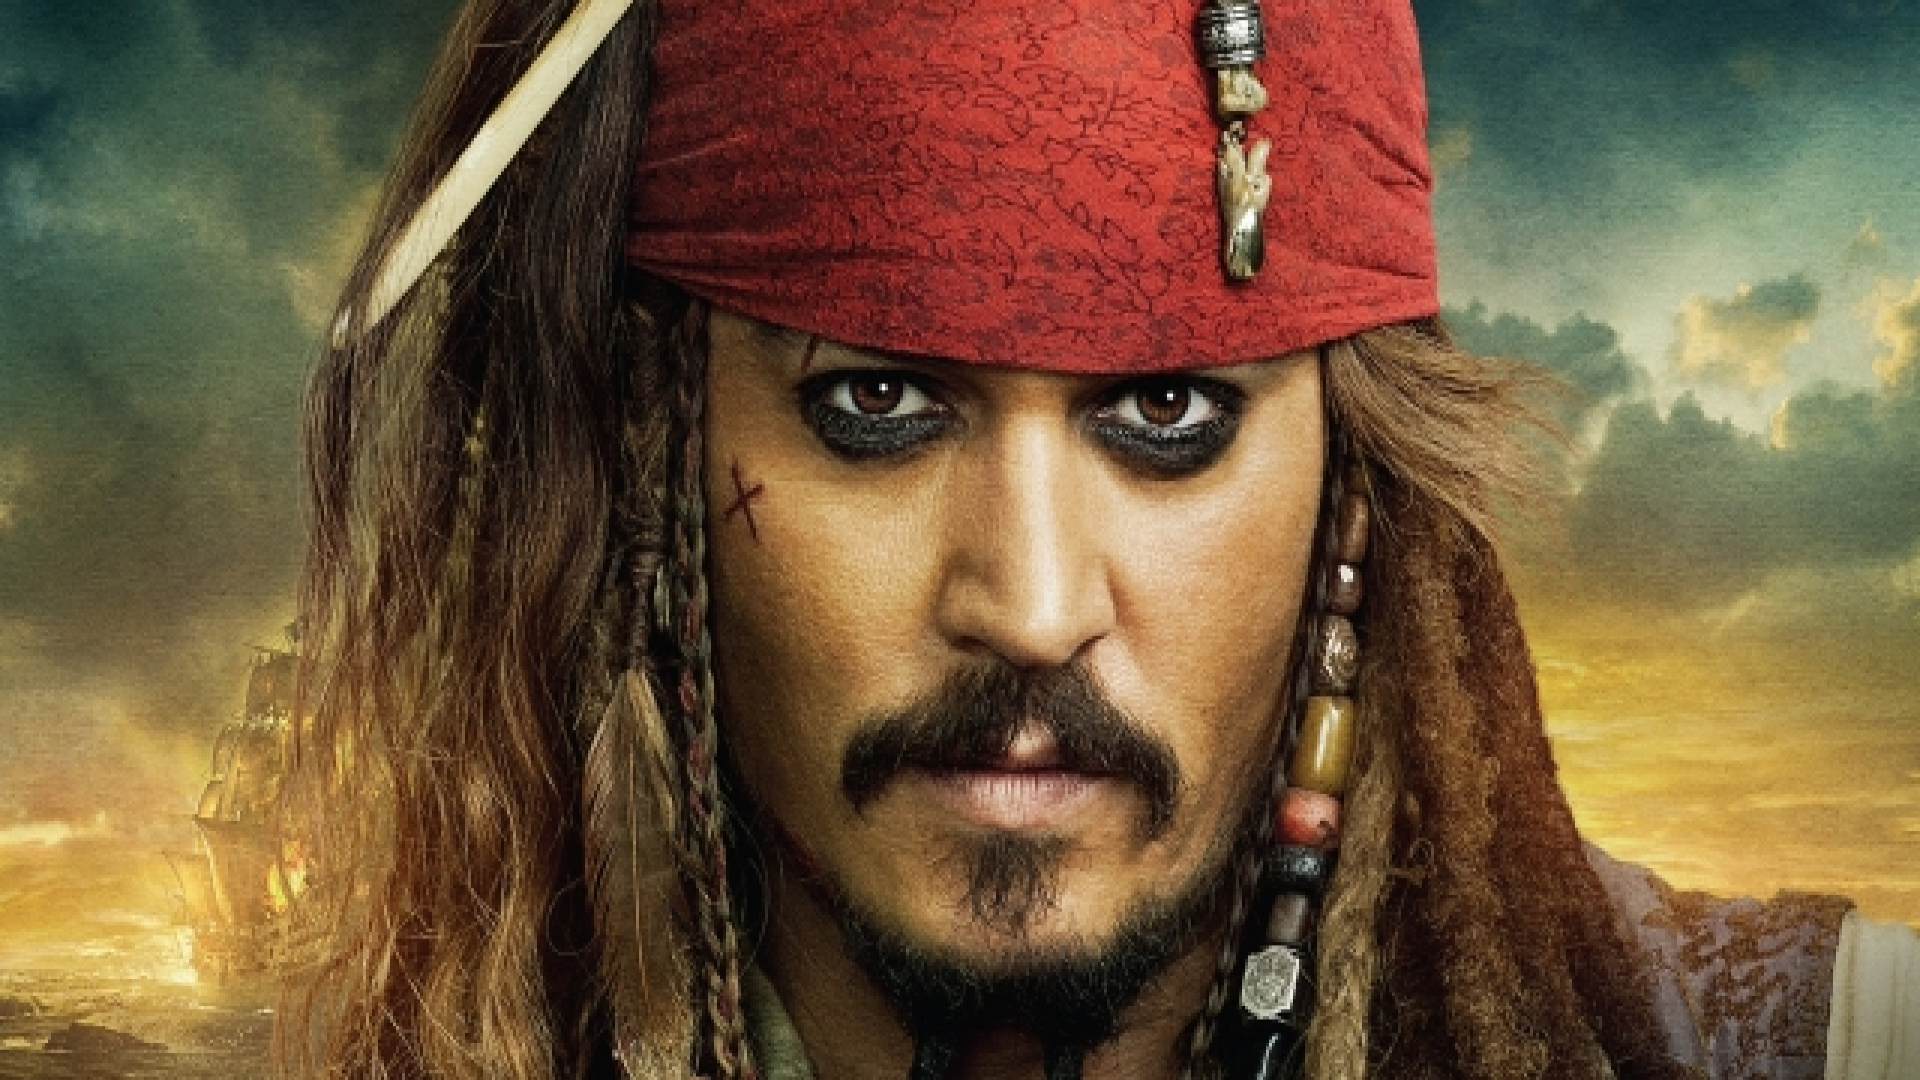 Johnny Depp Reportedly Not Returning To Pirates Of The Caribbean Franchise